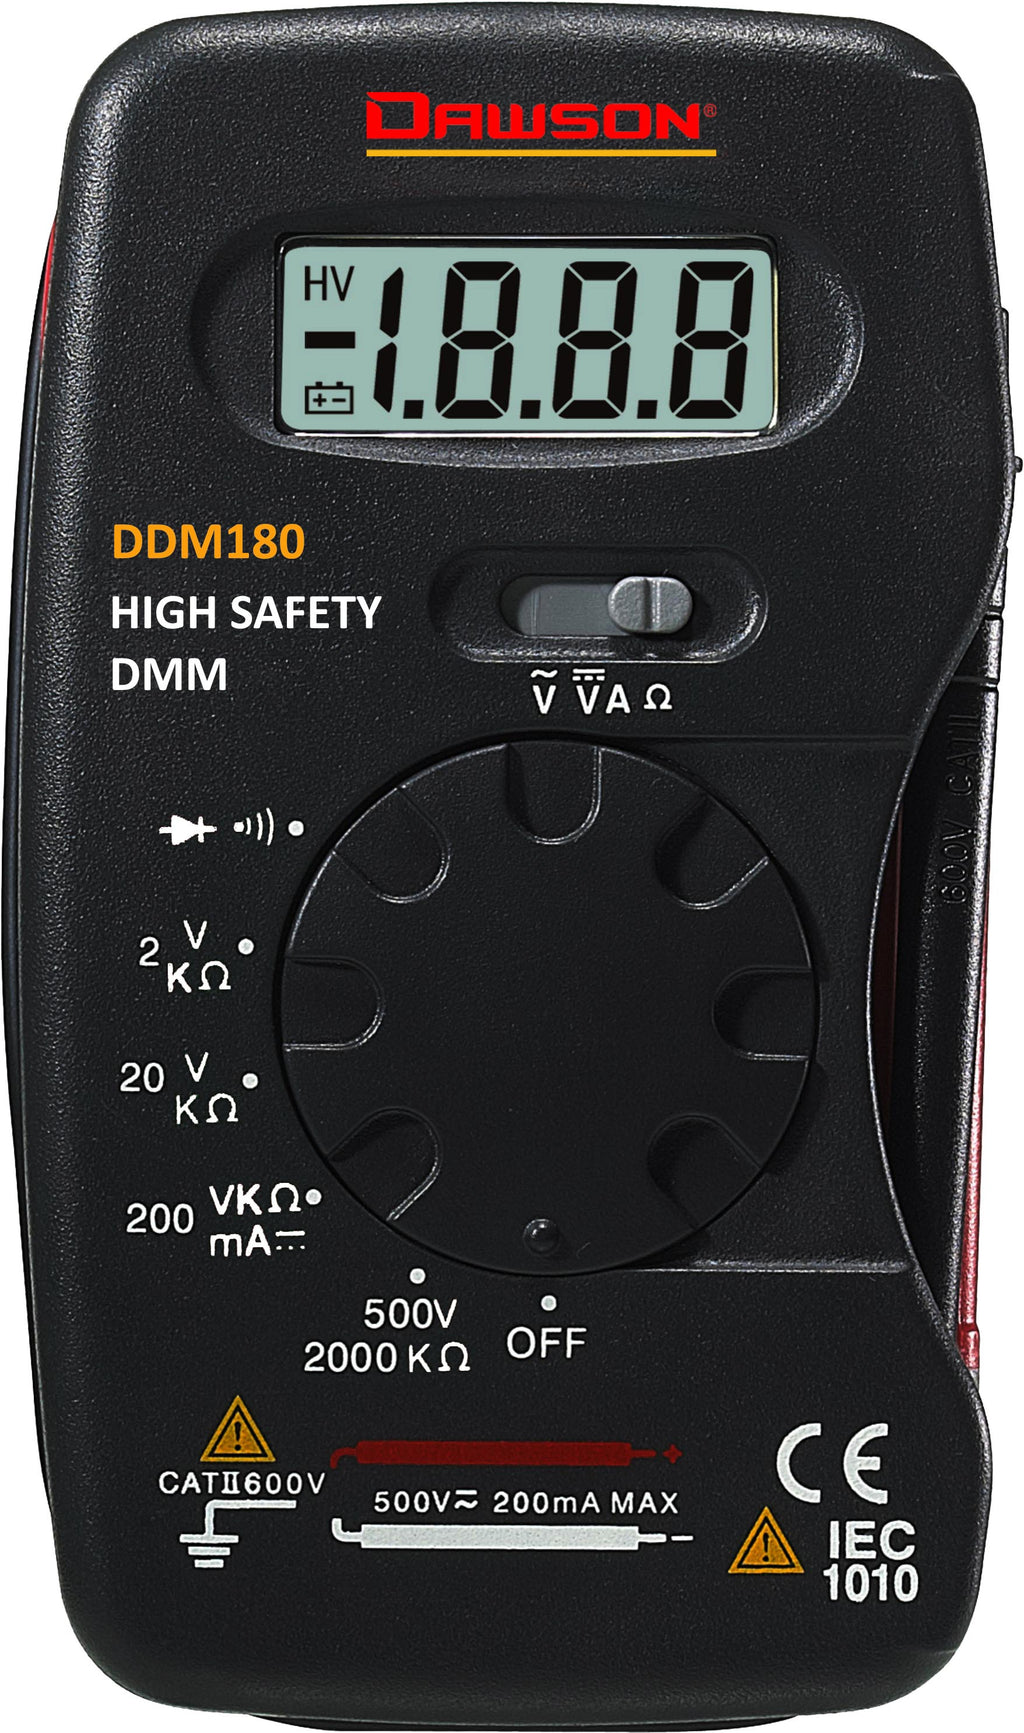 Pocket-Size Digital Multimeters - DDM180